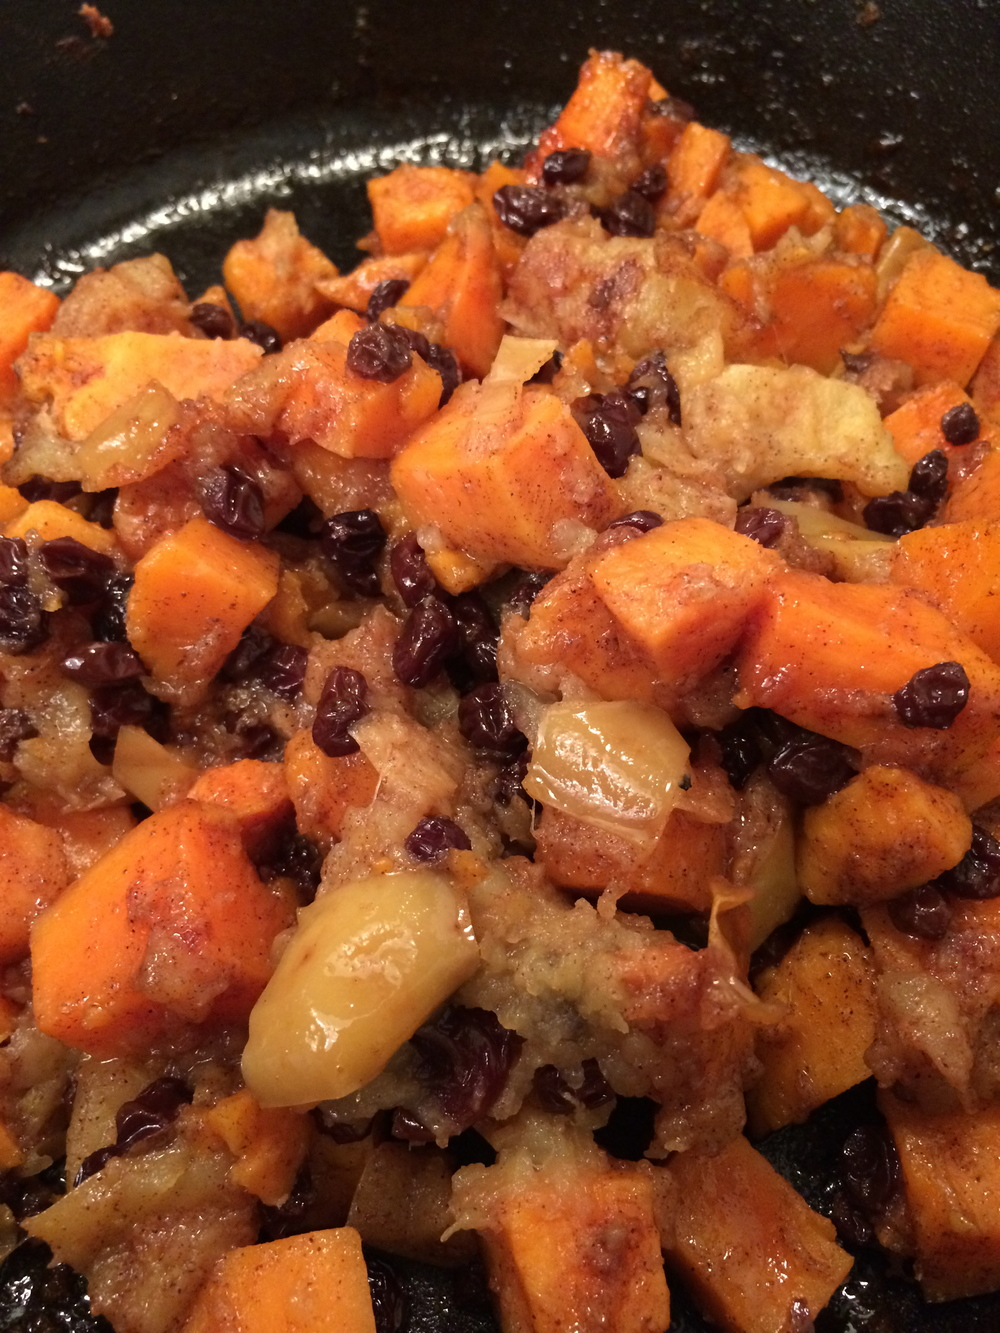 Baked Spiced Sweet Potatoes and Apples